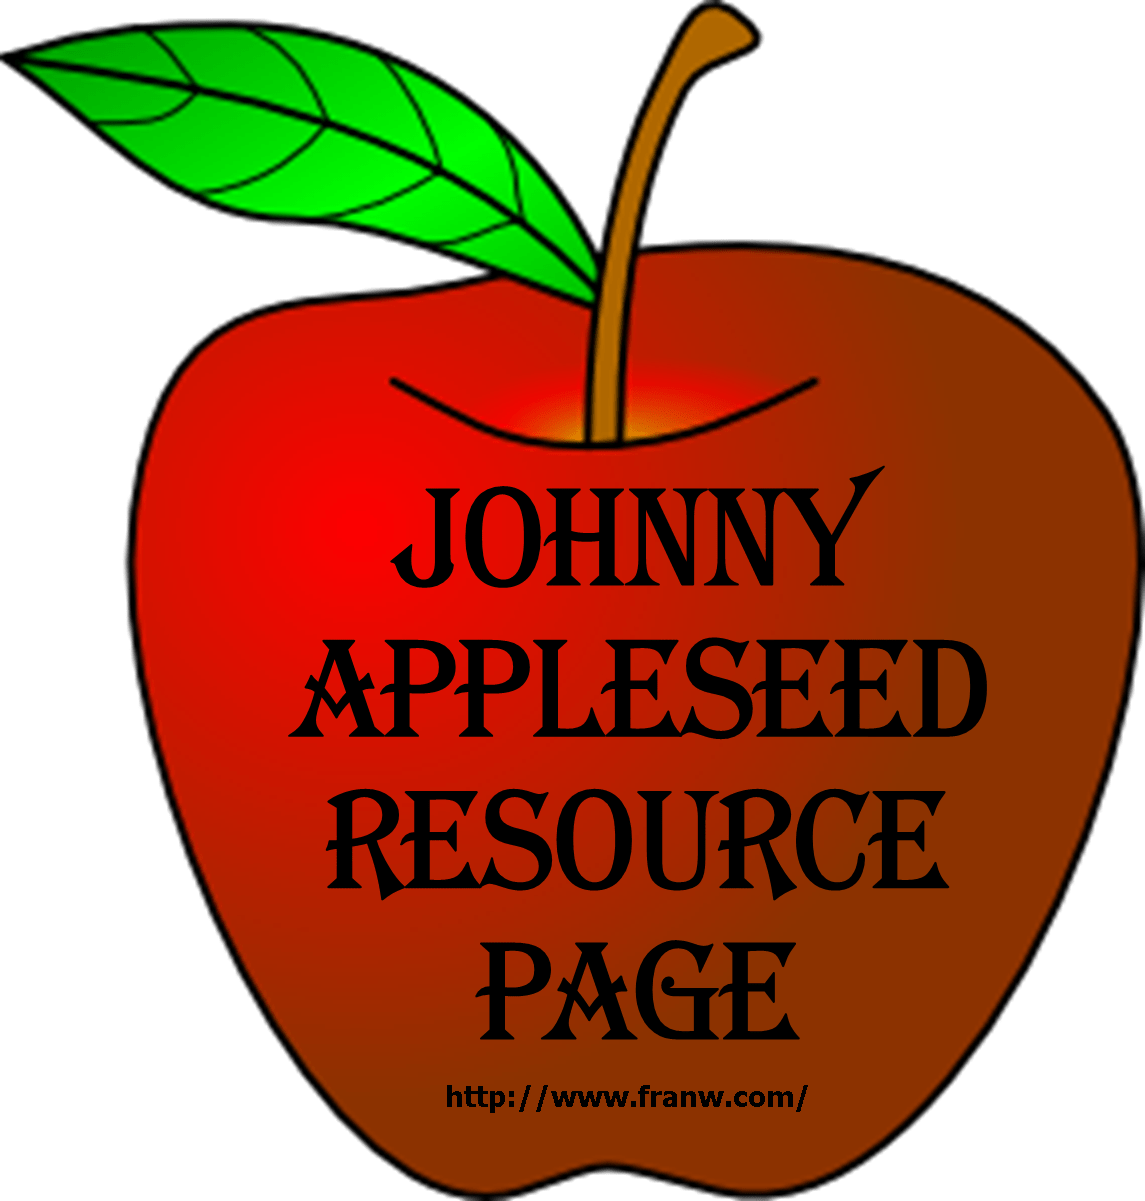 Johnny Appleseed Resource Page Franw